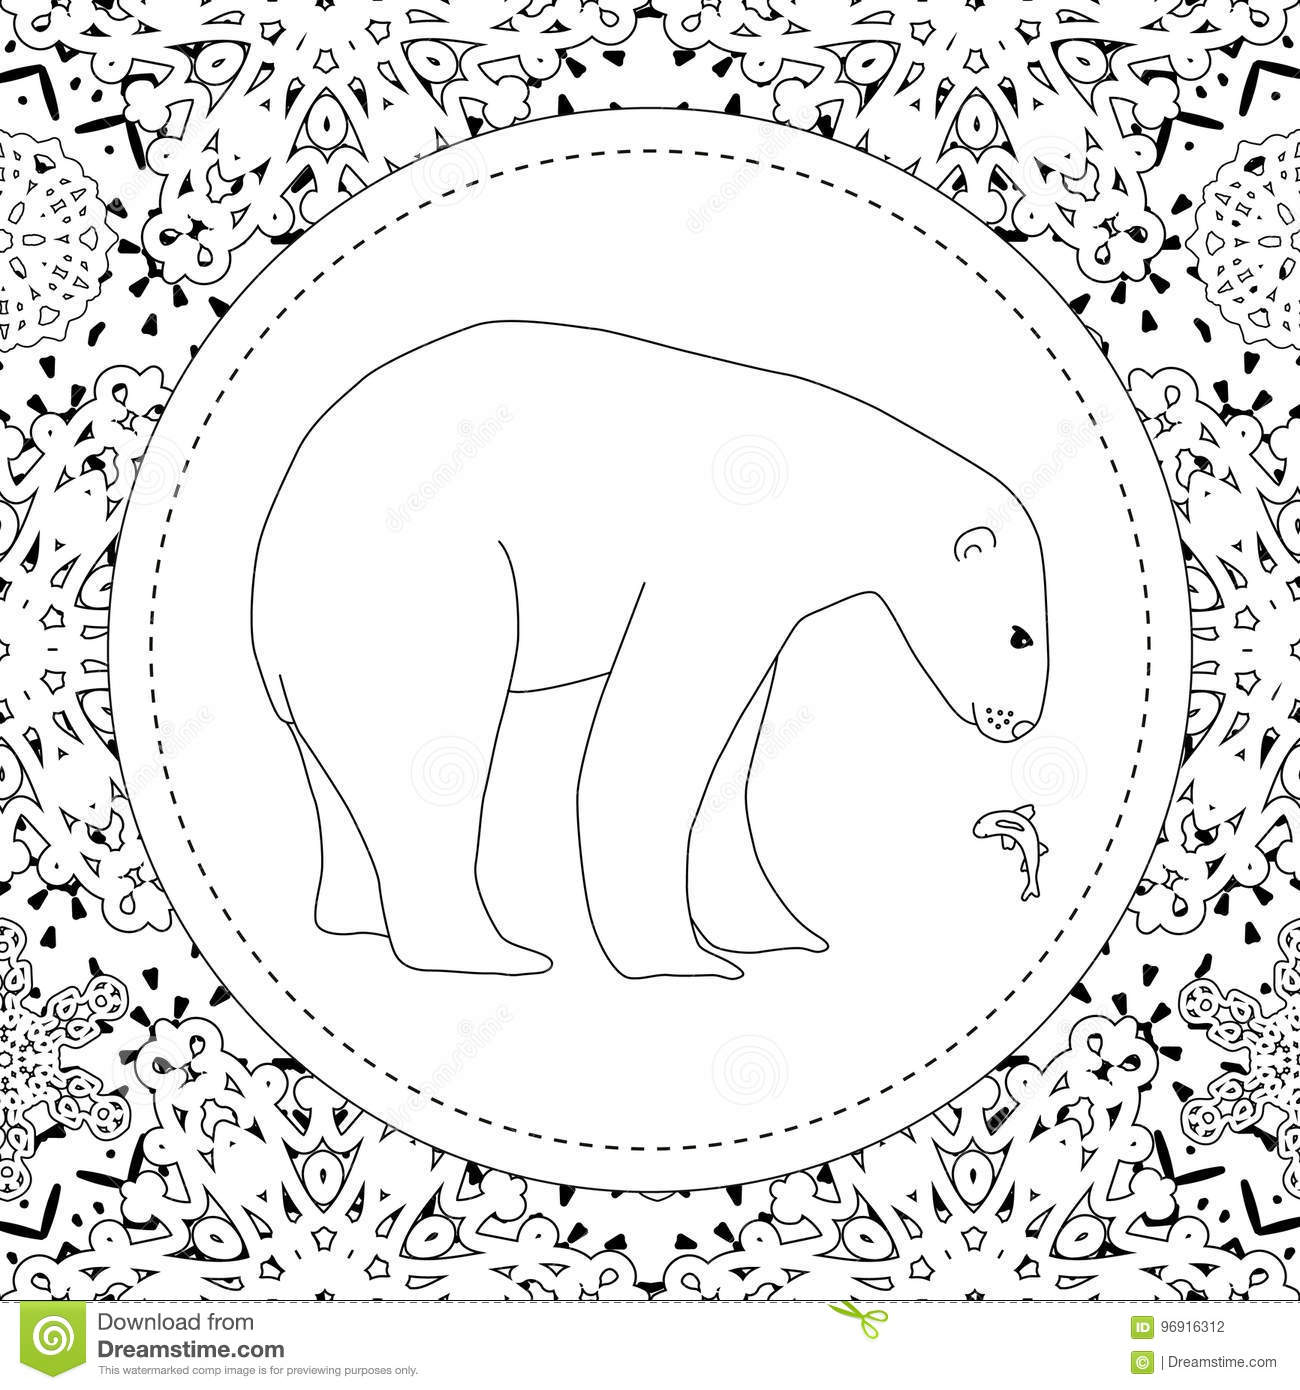 Coloring Pages. A Polar Bear Stands In The Snow. A Winter Postcard ...